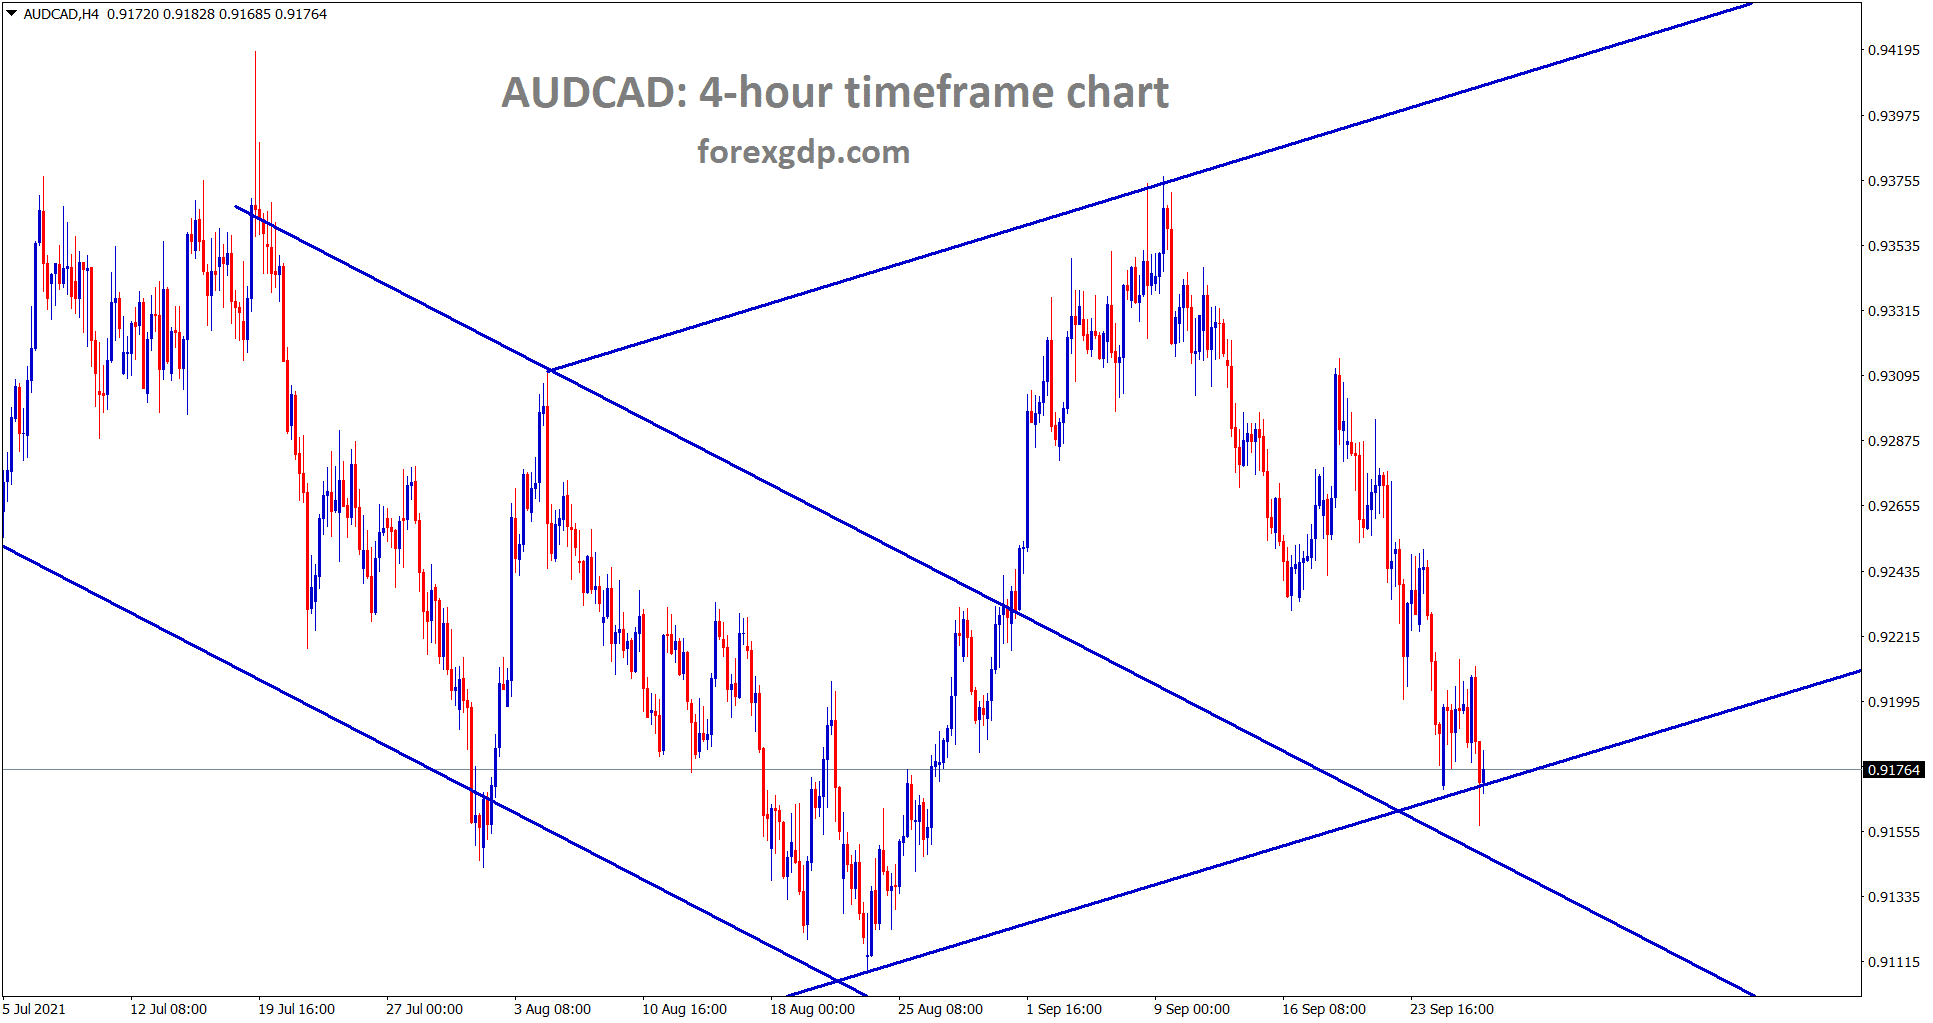 AUDCAD is standing at the higher low and retest area of the previous broken descending channel